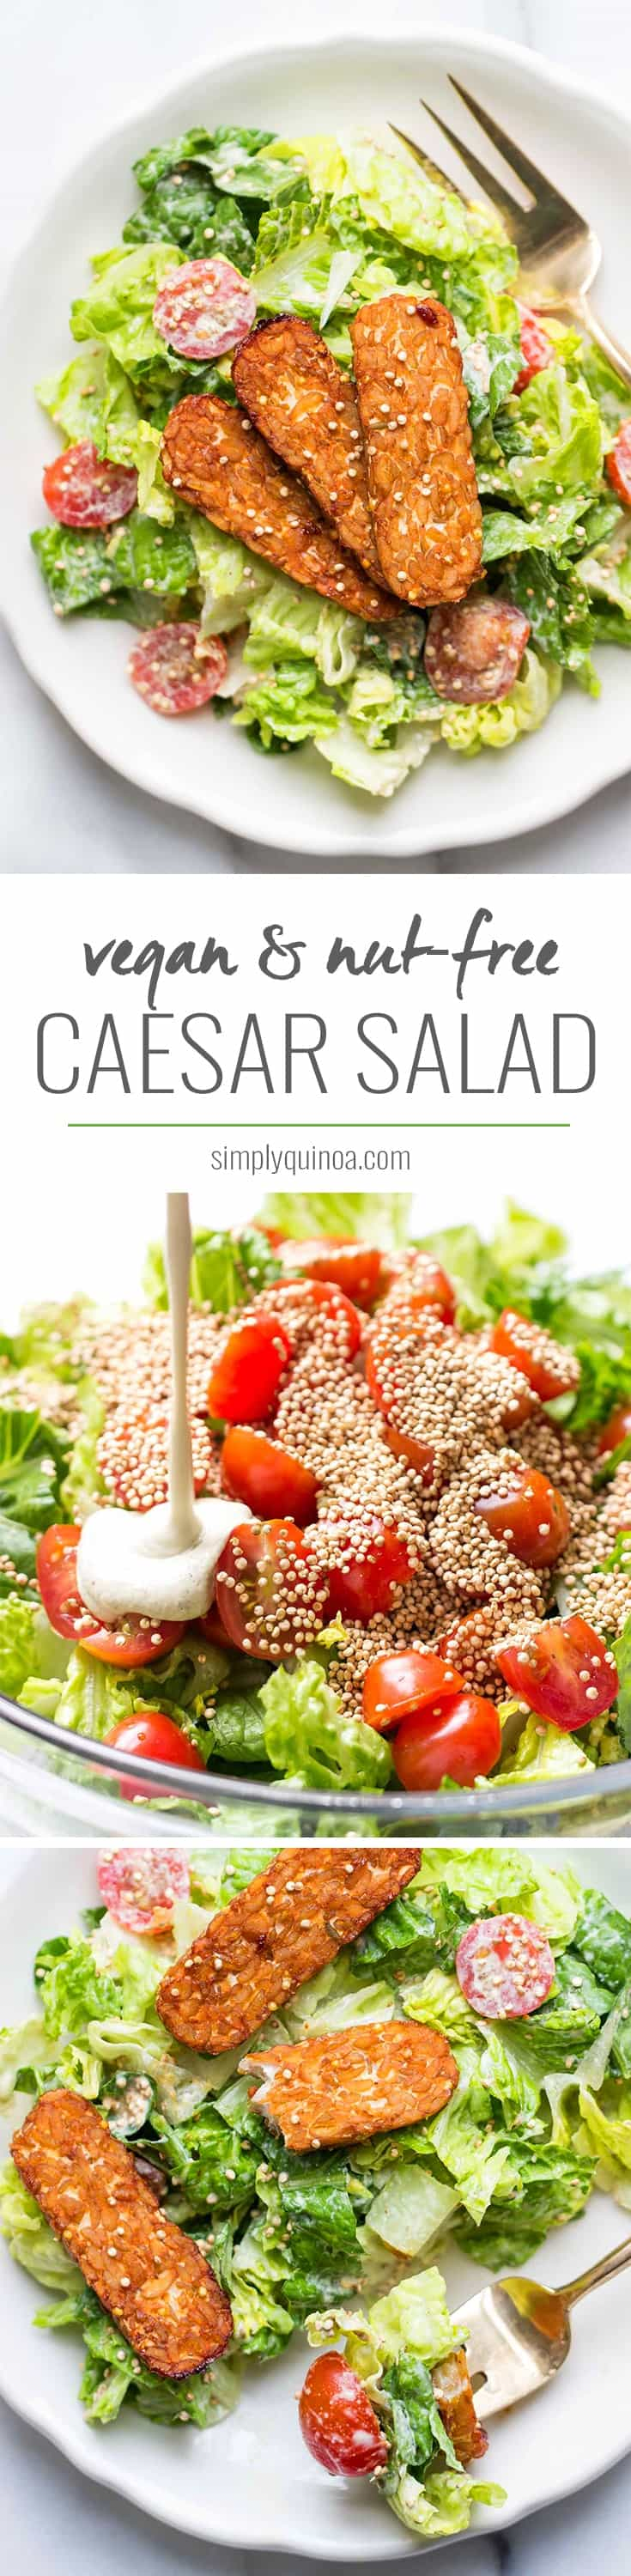 Vegan Caesar Salad! Made with a cashew-less dressing and topped with smoky baked tempeh strips! This is so healthy and SO FLAVORFUL!